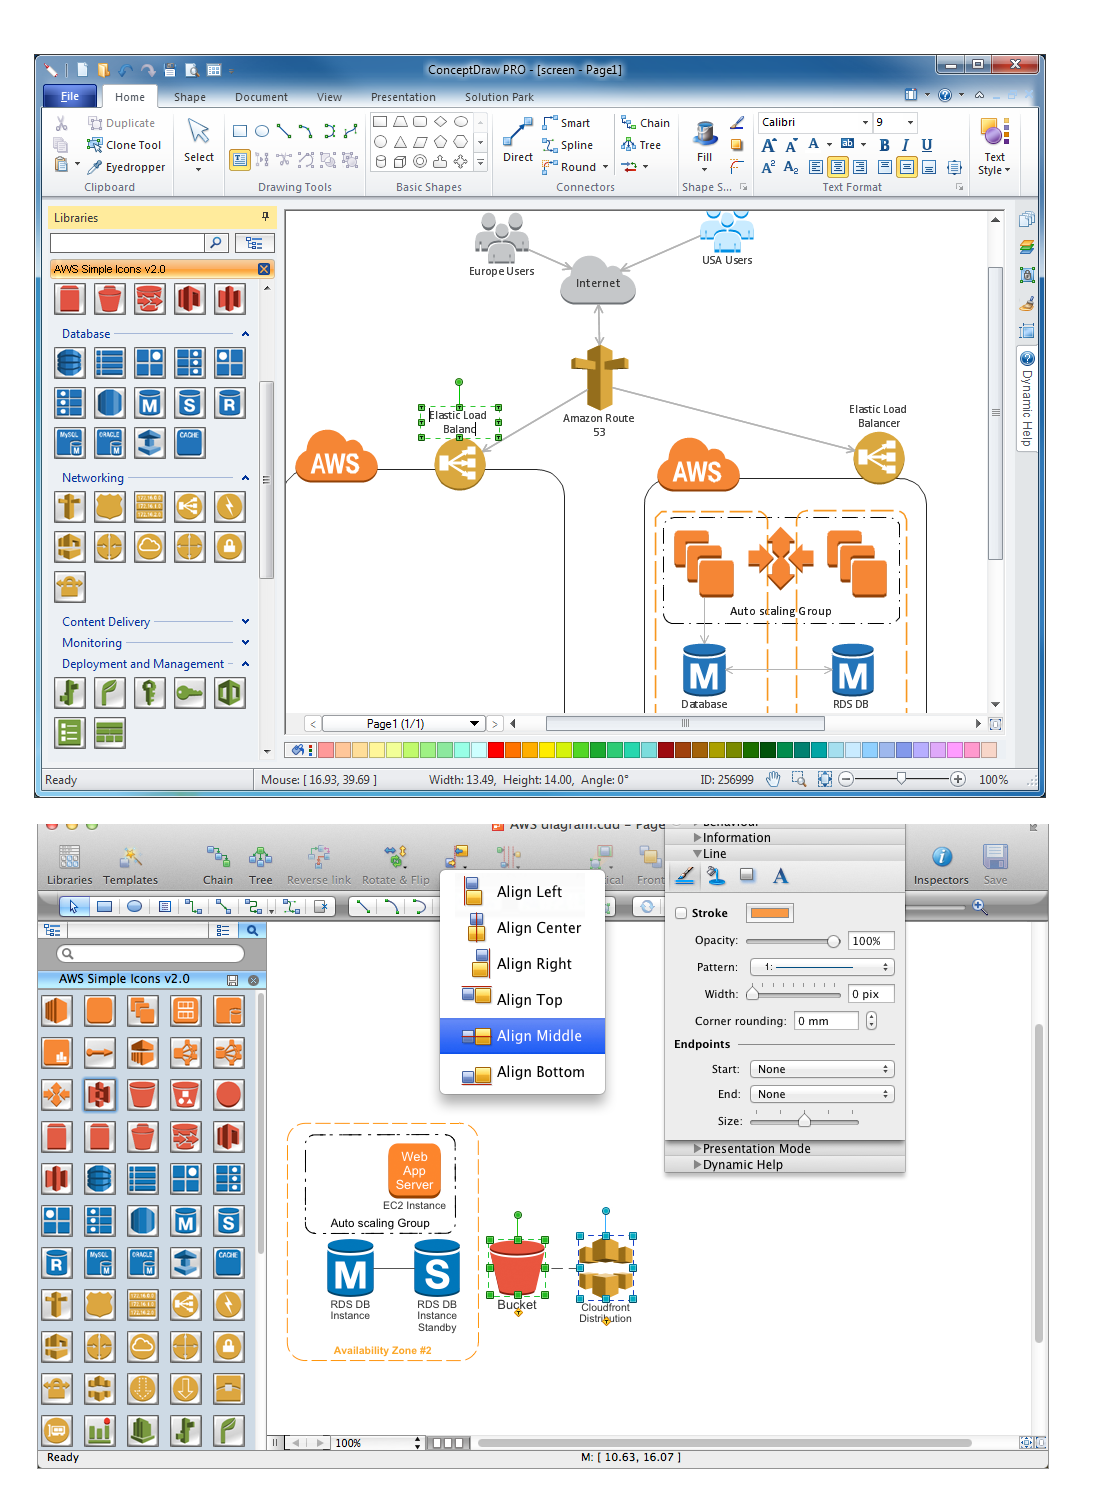 Aws icons design elements for aws architecture diagrams aws architecture diagrams solution mac os x windows ccuart Choice Image